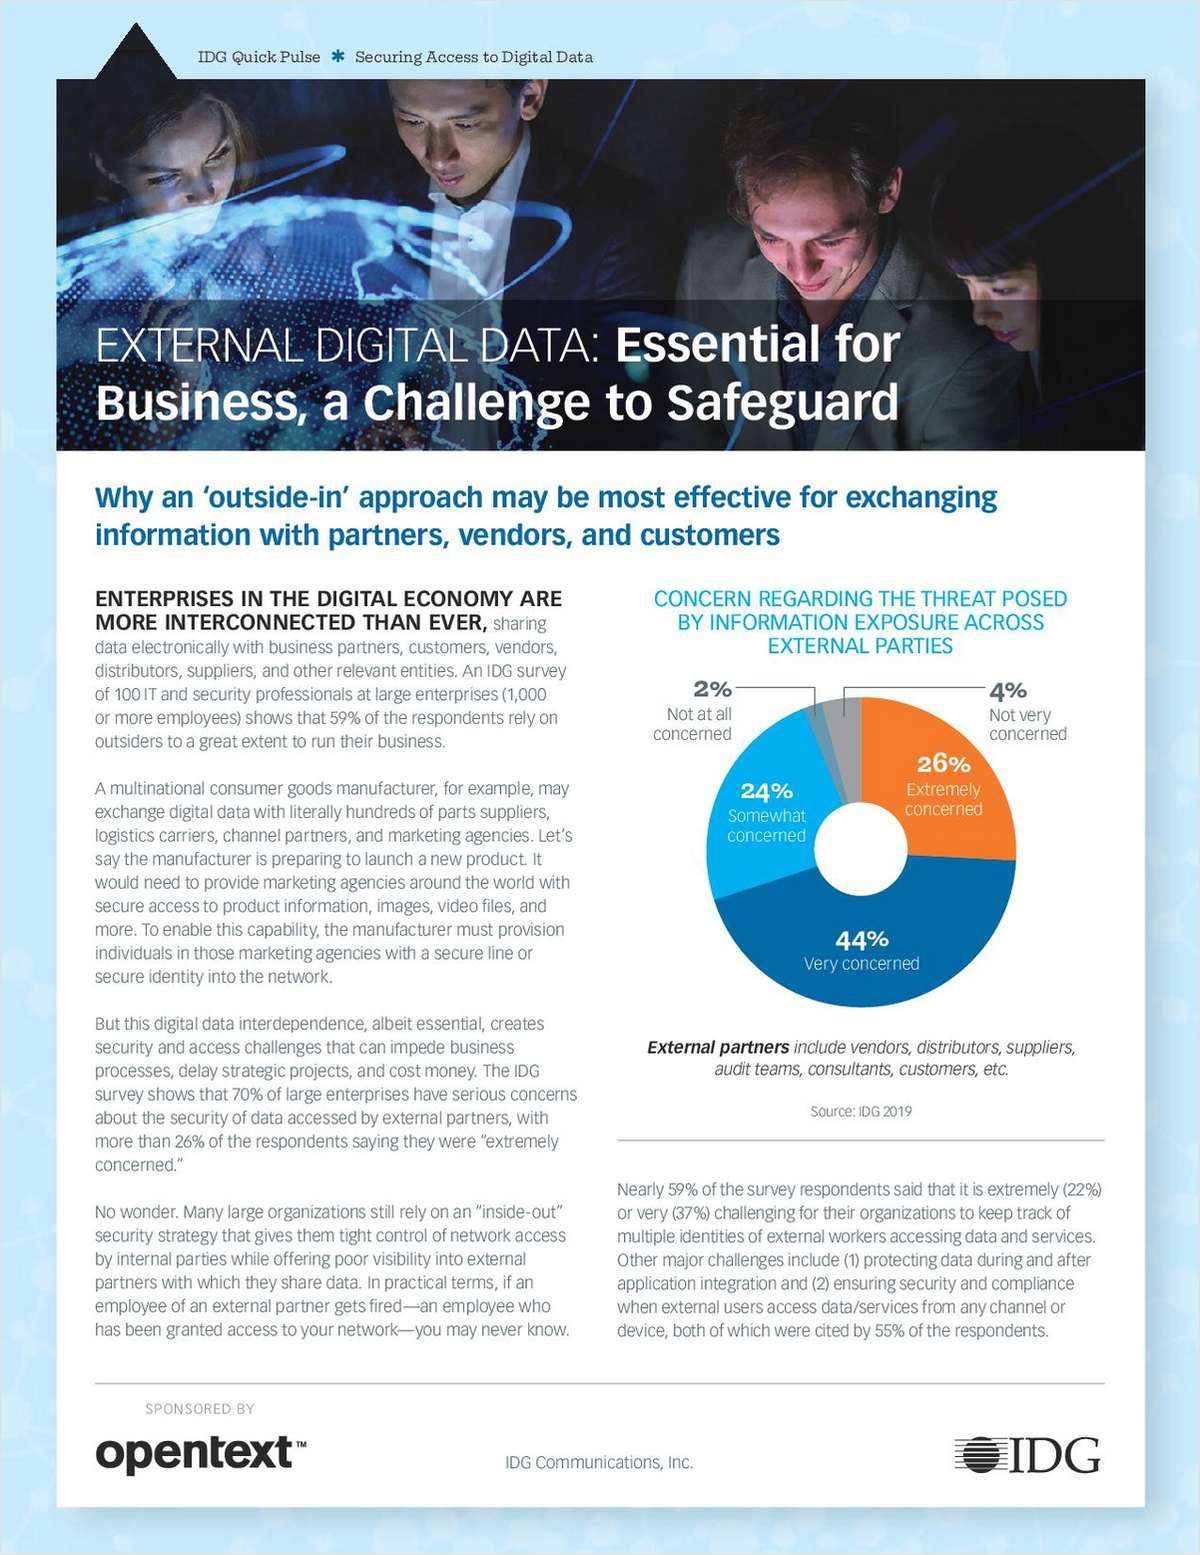 External Digital Data: Essential for Business, a Challenge to Safeguard